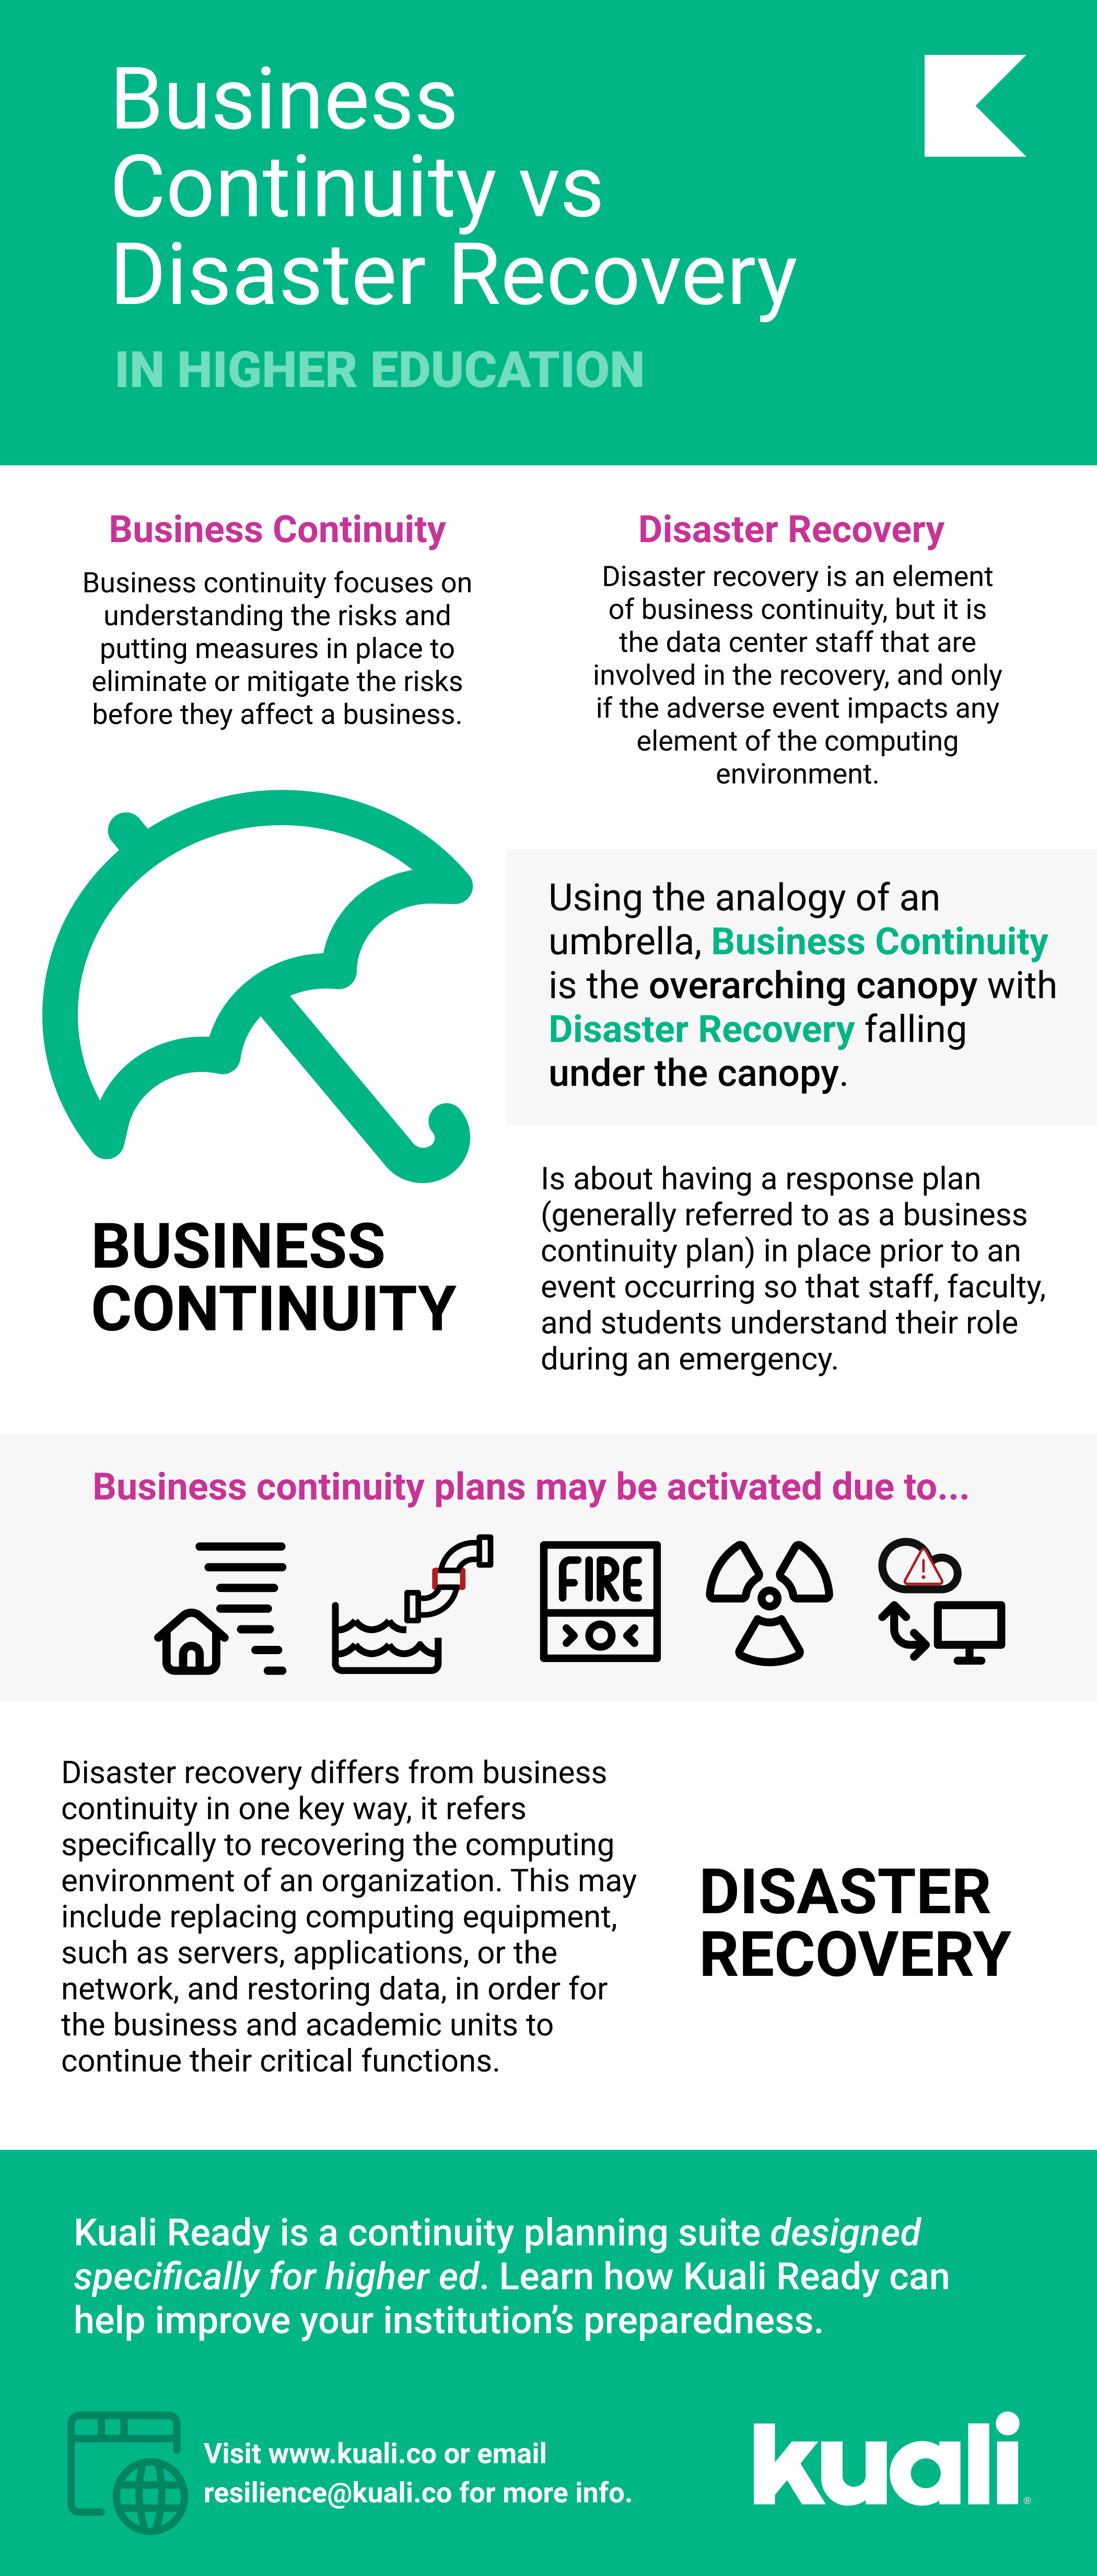 Business Continuity vs Disaster Recovery Infographic - Click to go to download page